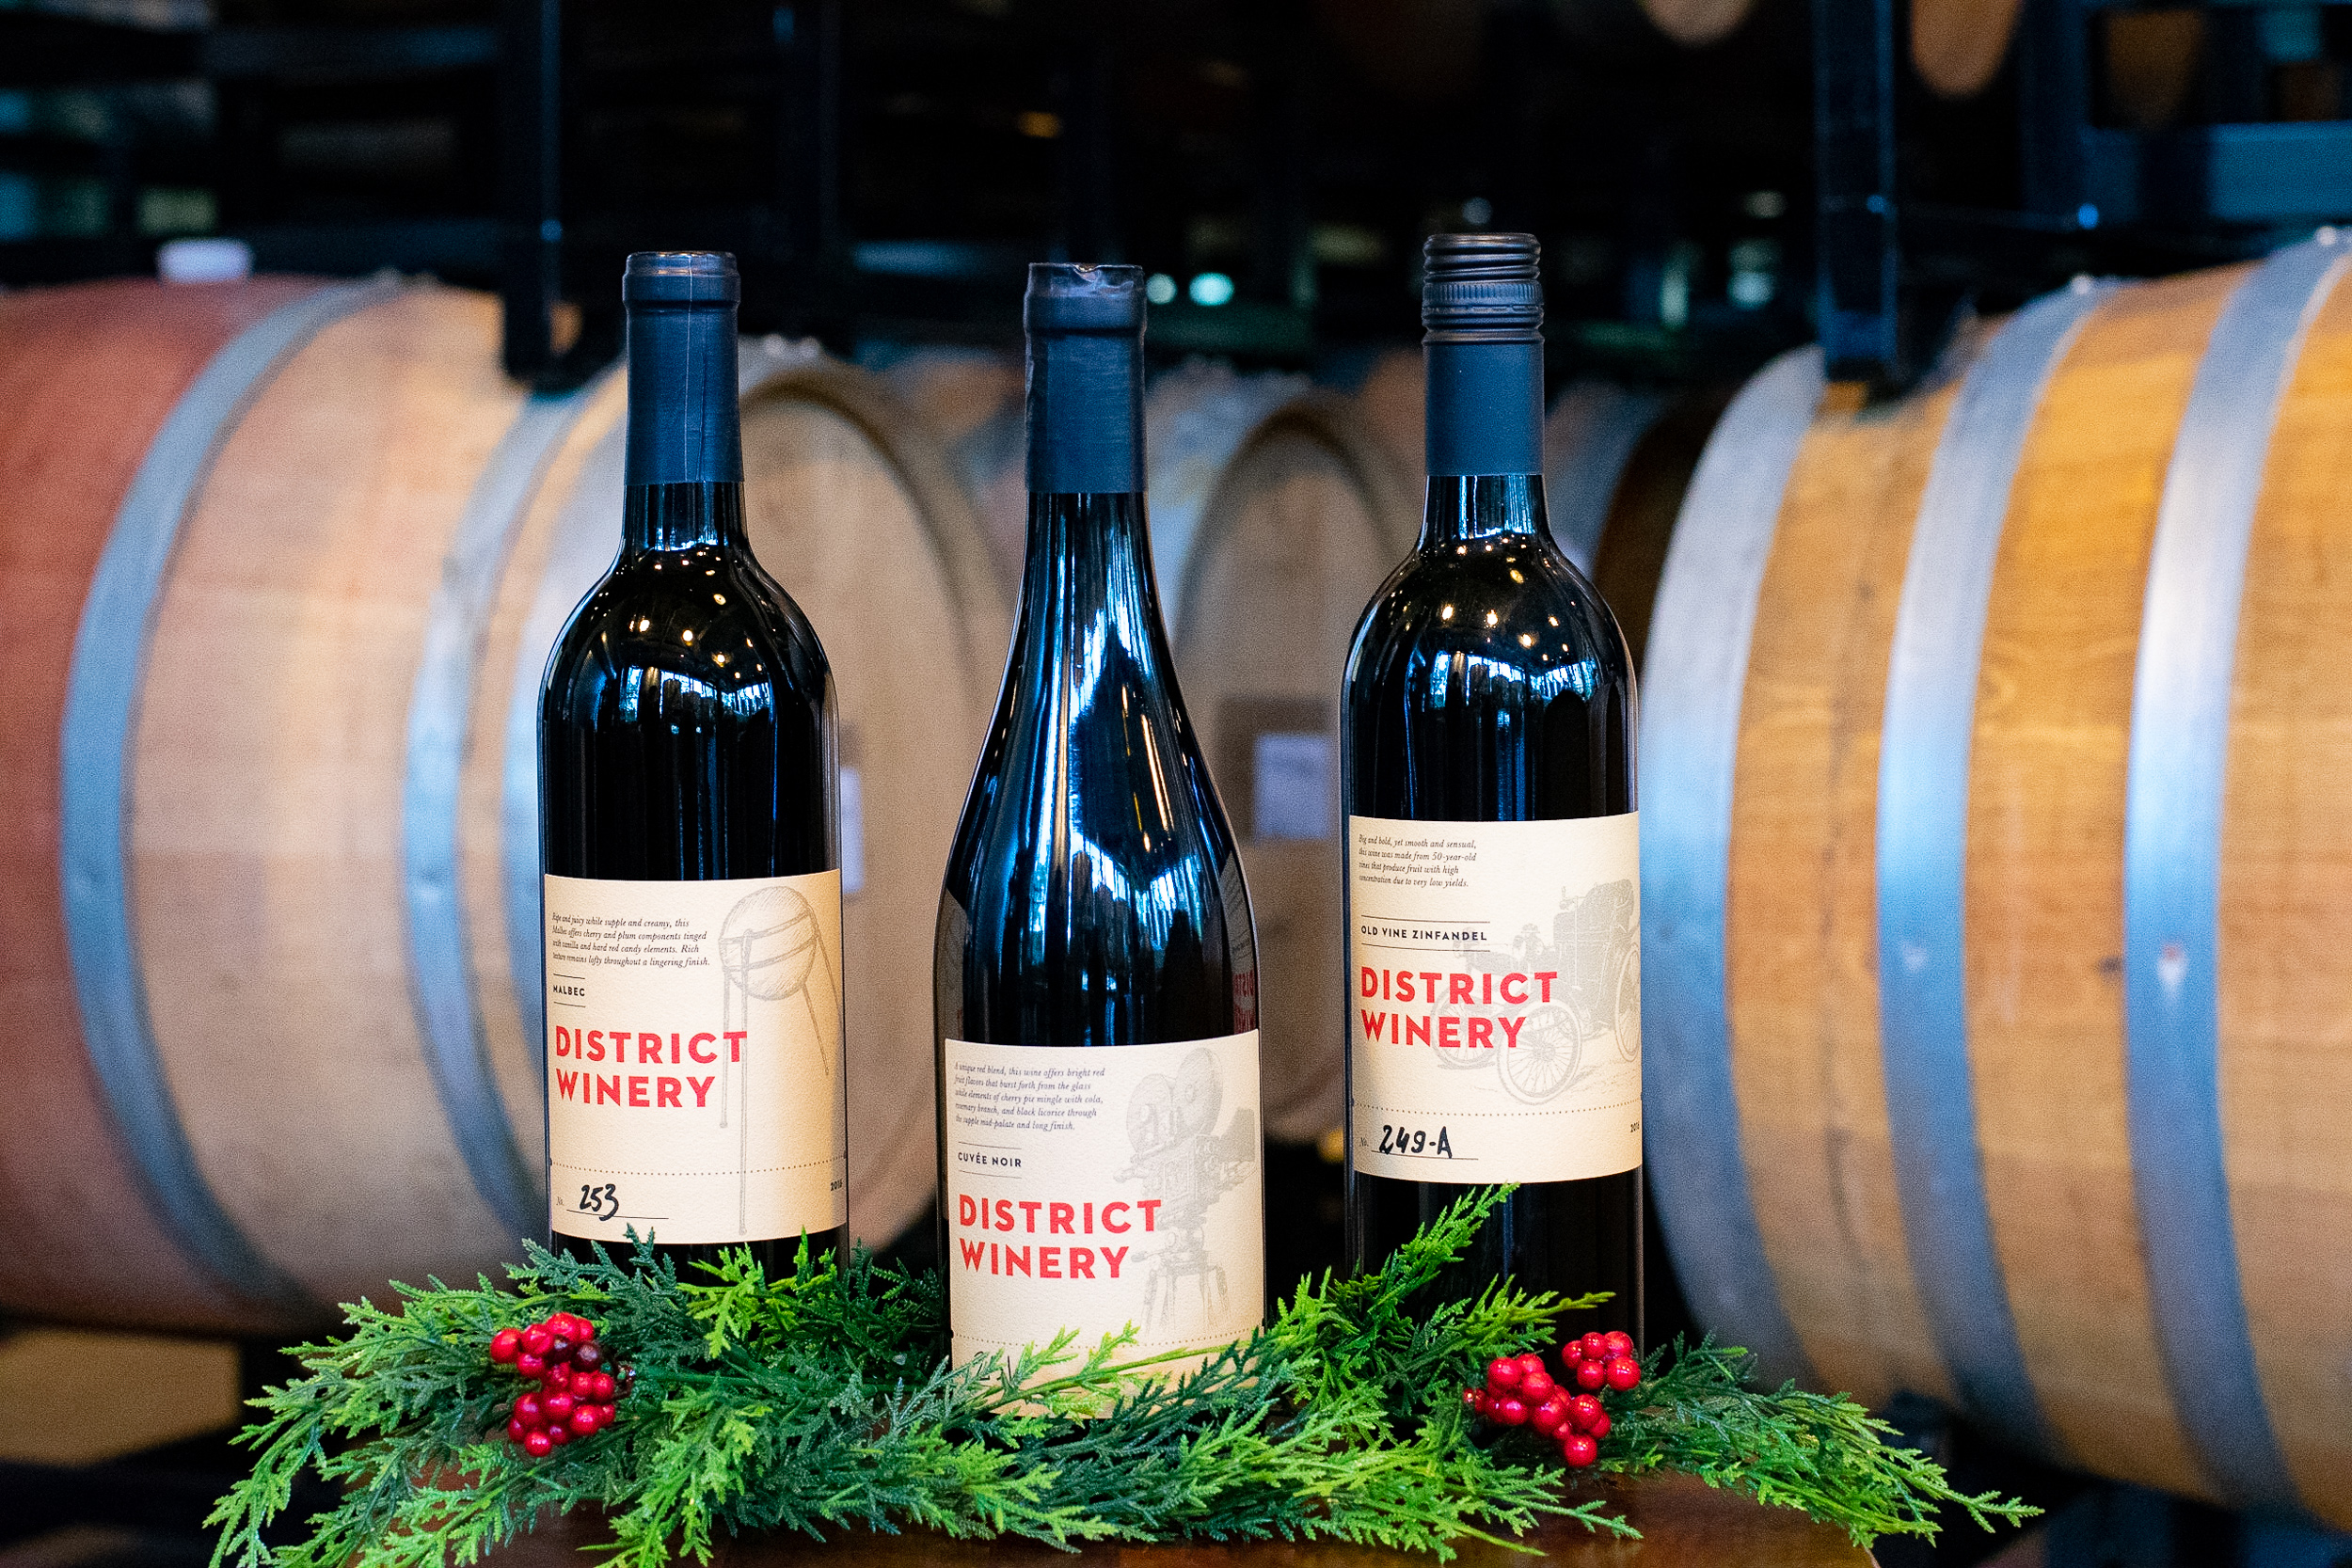 Tour and tasting from District Winery // Price: $38.50 // Buy online // https://districtwinery.com/tours // (Image: District Winery)